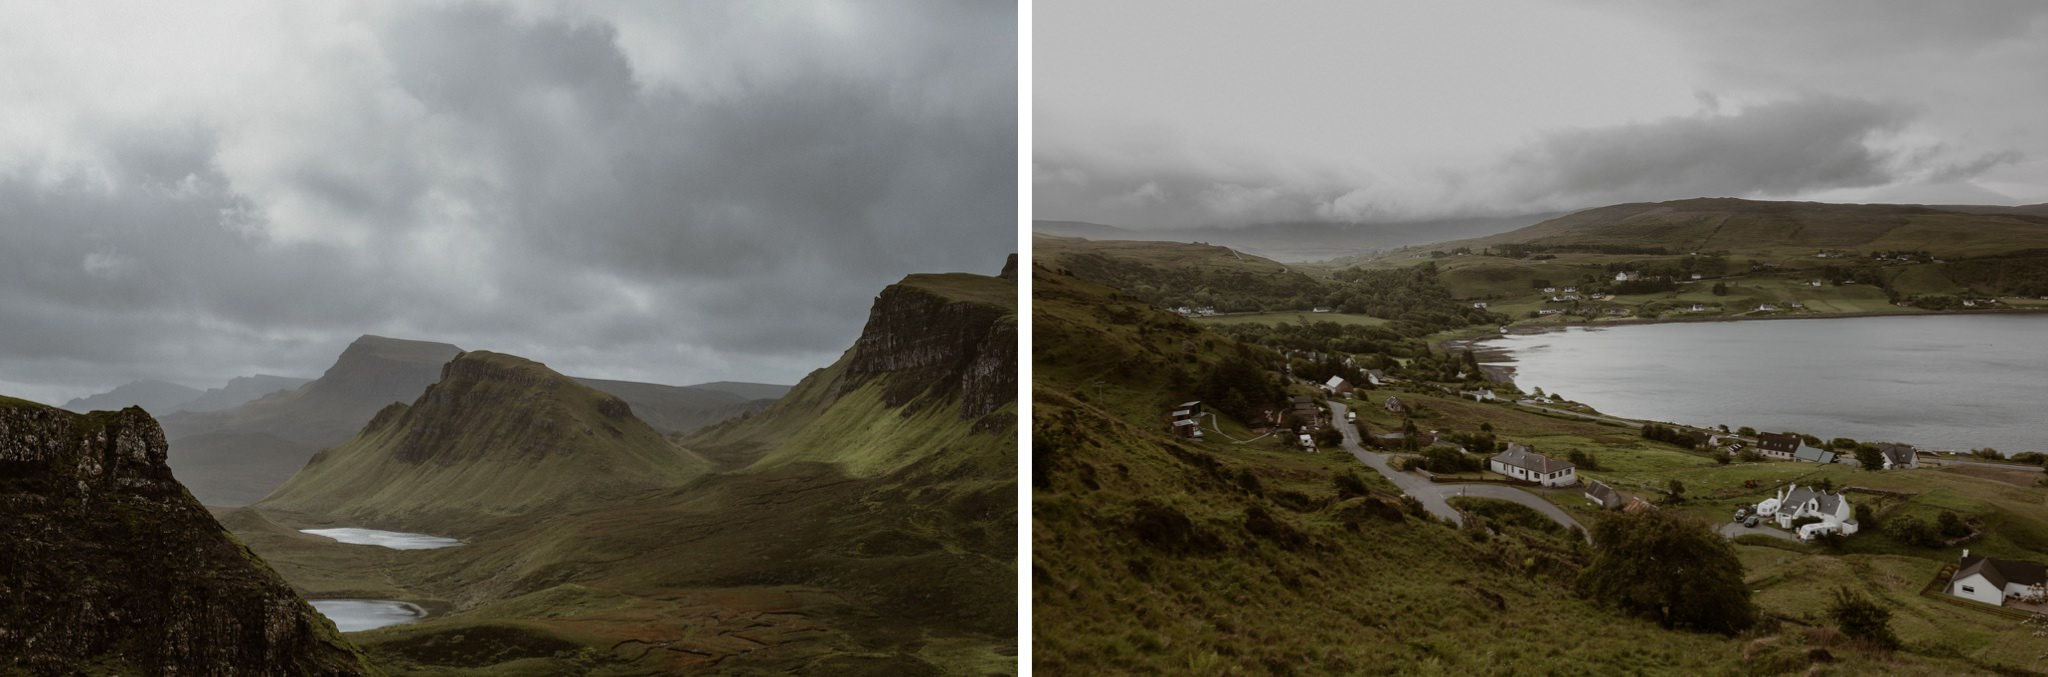 Views of the trotternish near the Quiraing in the Isle of Skye